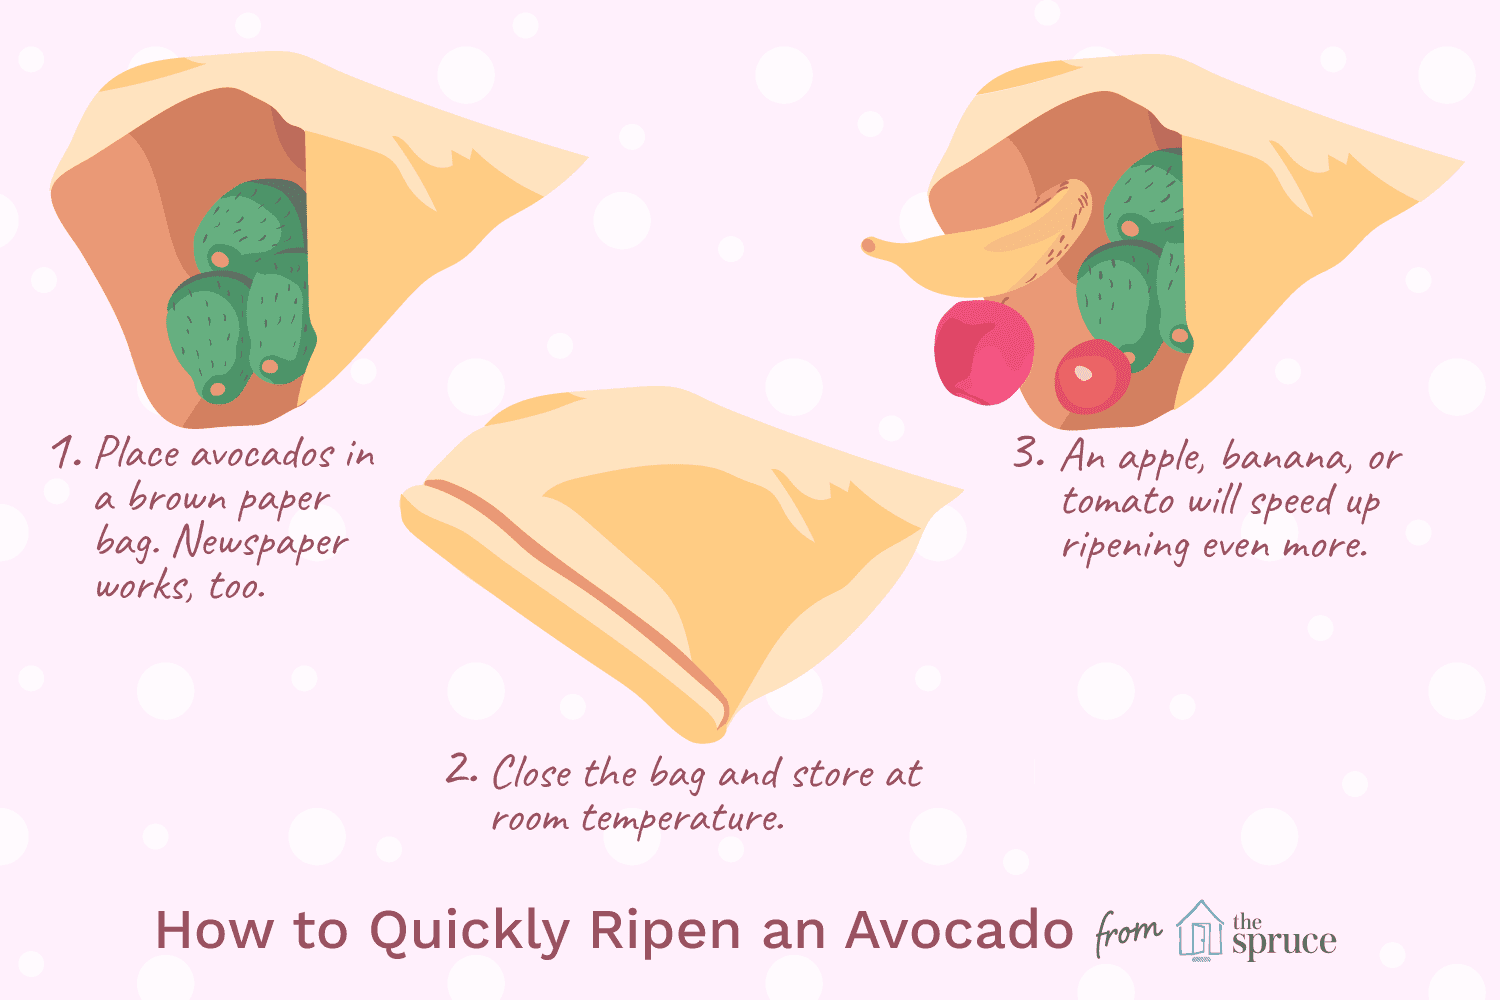 how to speed up the ripening of avocados